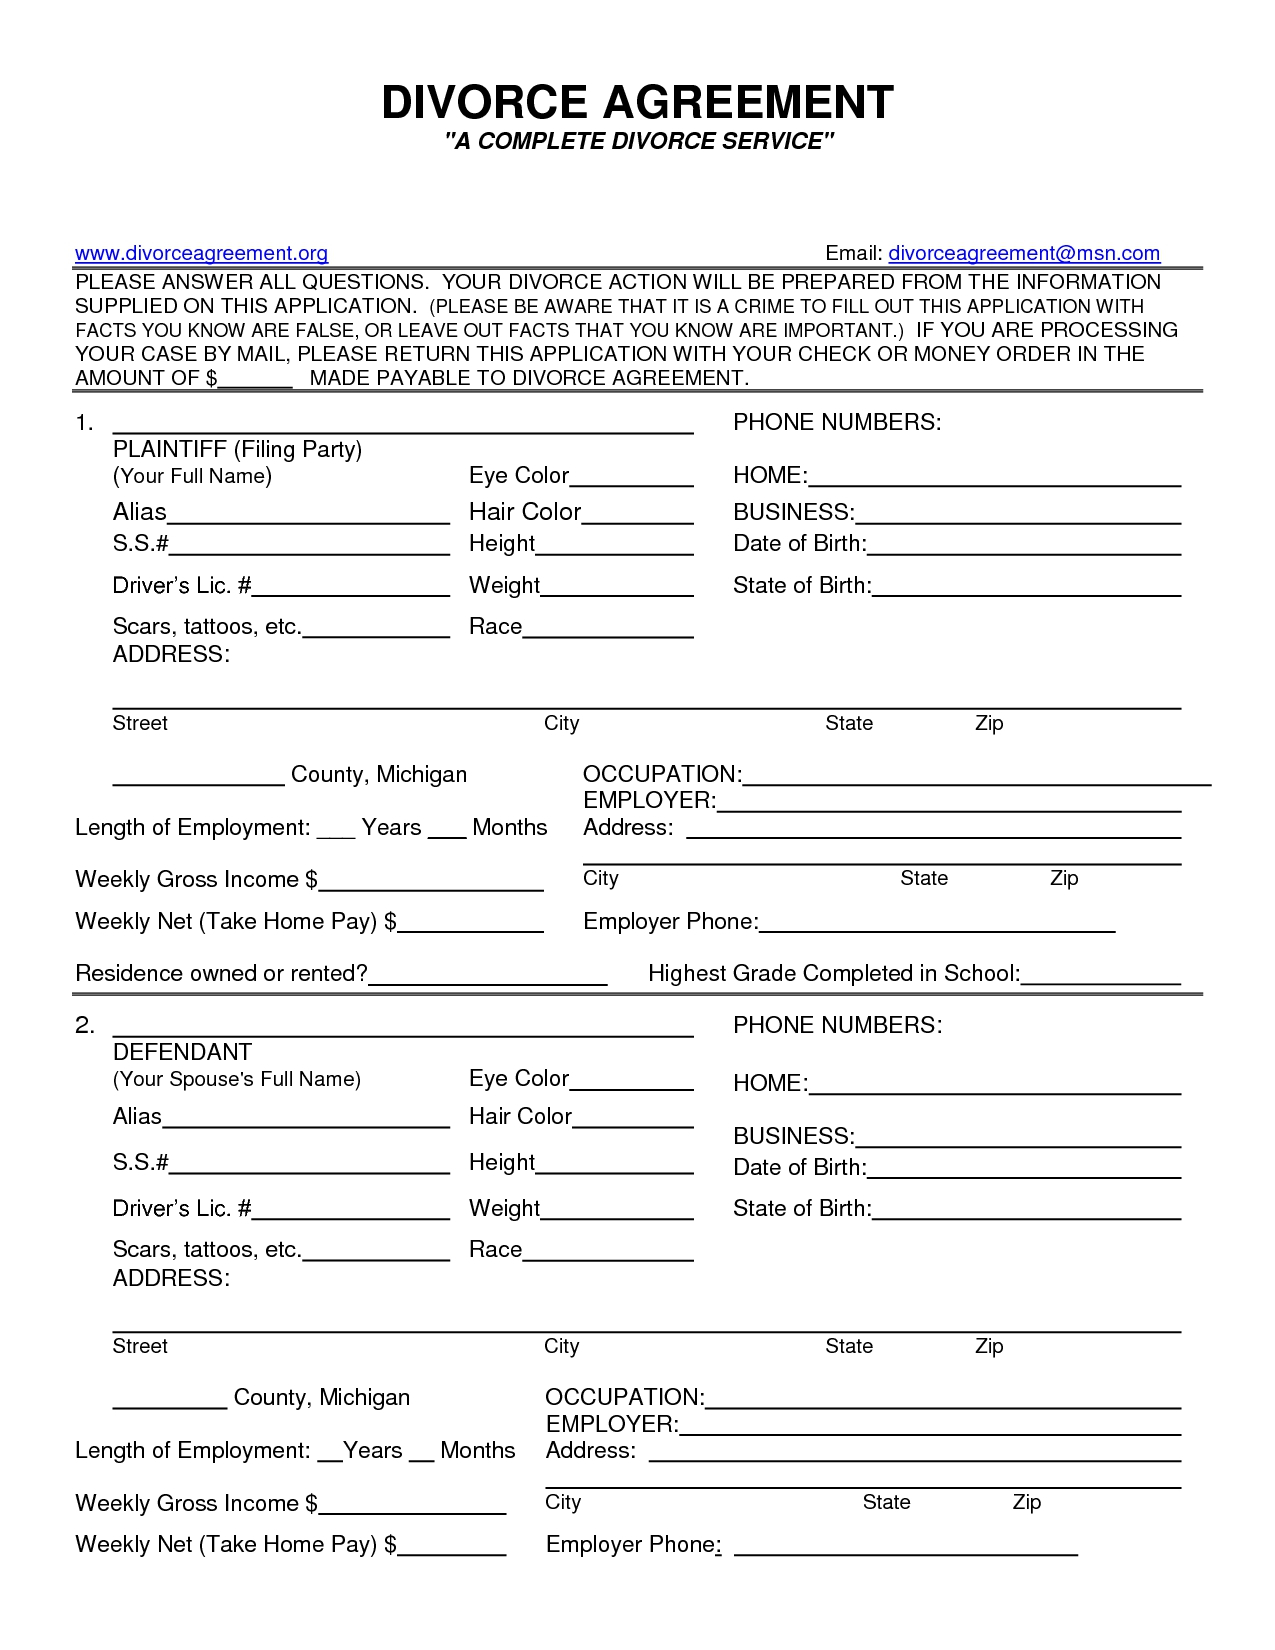 Fake Bill Of Sale Best Sc Divorce Forms Adoption Papers Ins  Free - Free Printable Adoption Papers